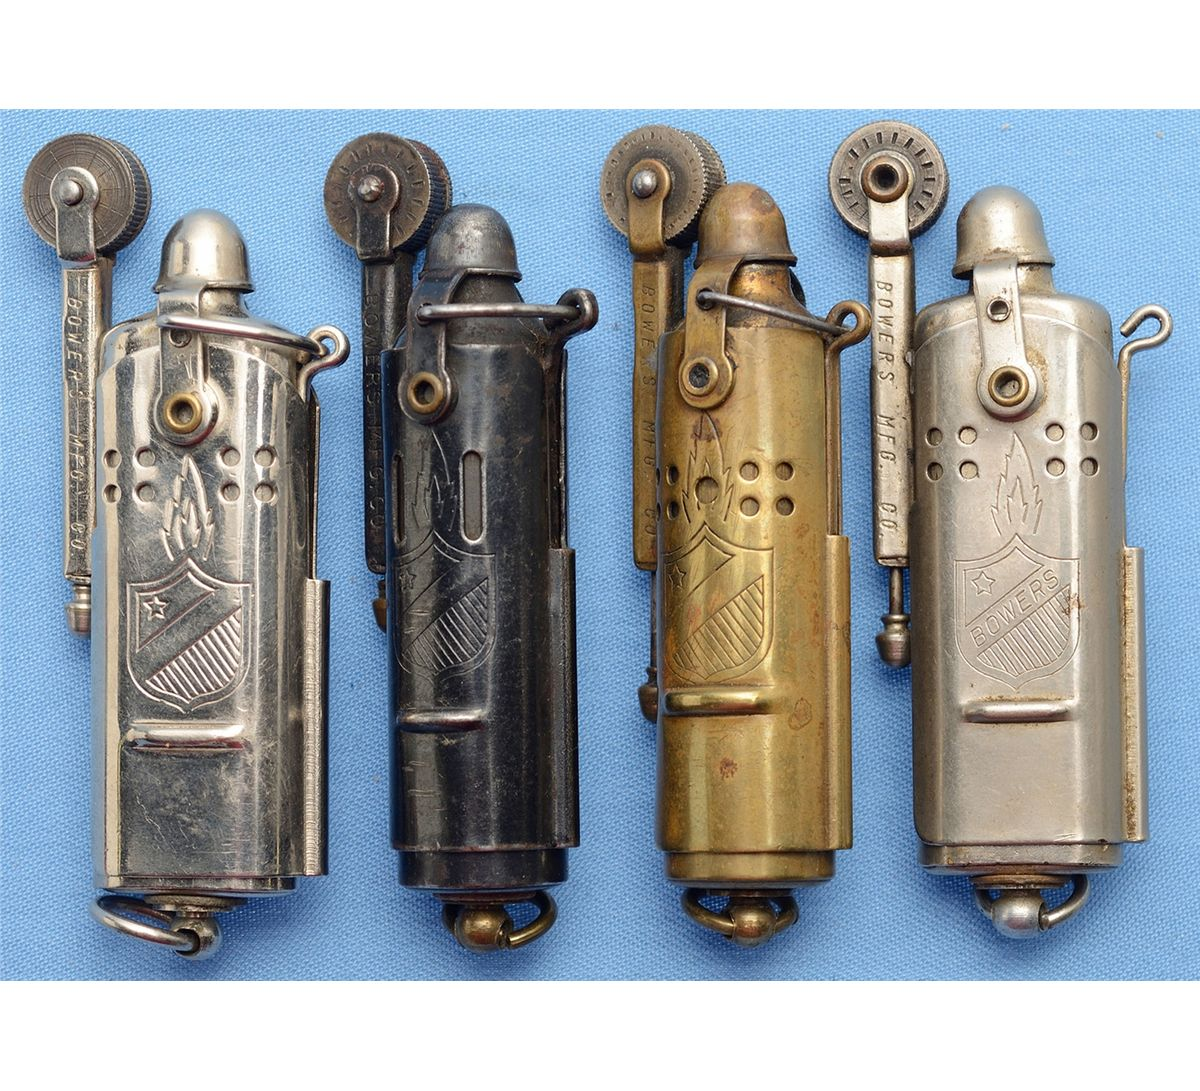 Four Bower WWI Style Trench Lighters